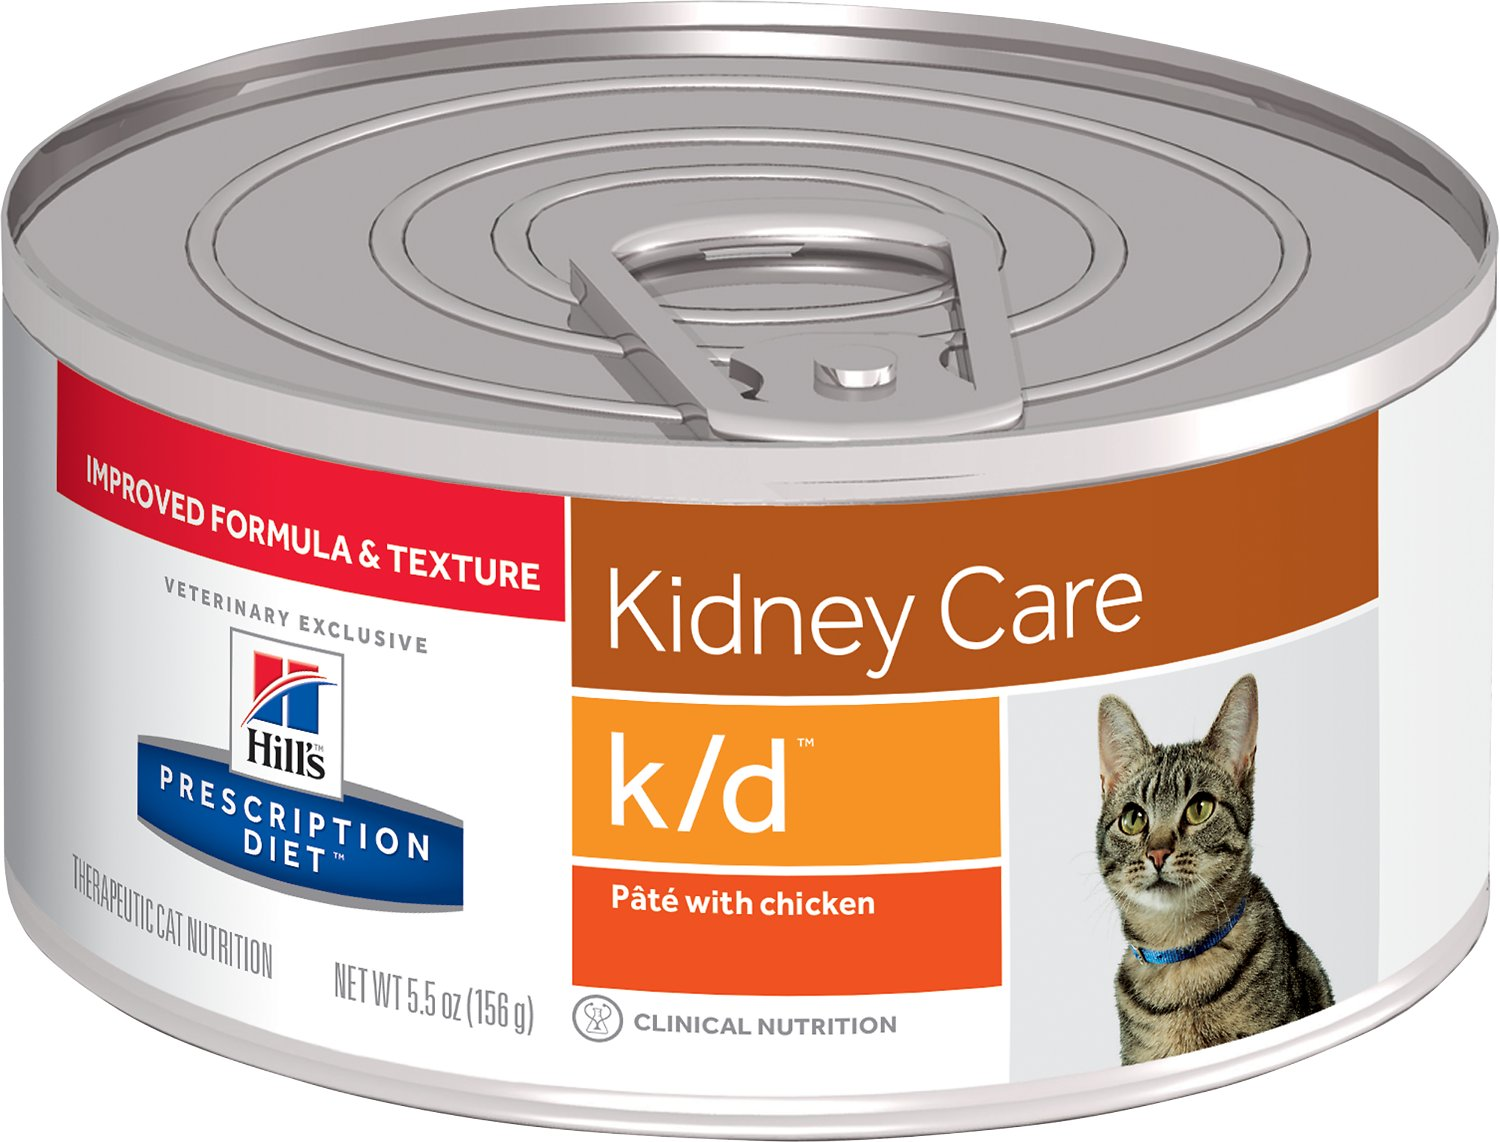 Hill's Prescription Diet k/d Kidney Care with Chicken Canned Cat Food, 5.5-oz, case of 24